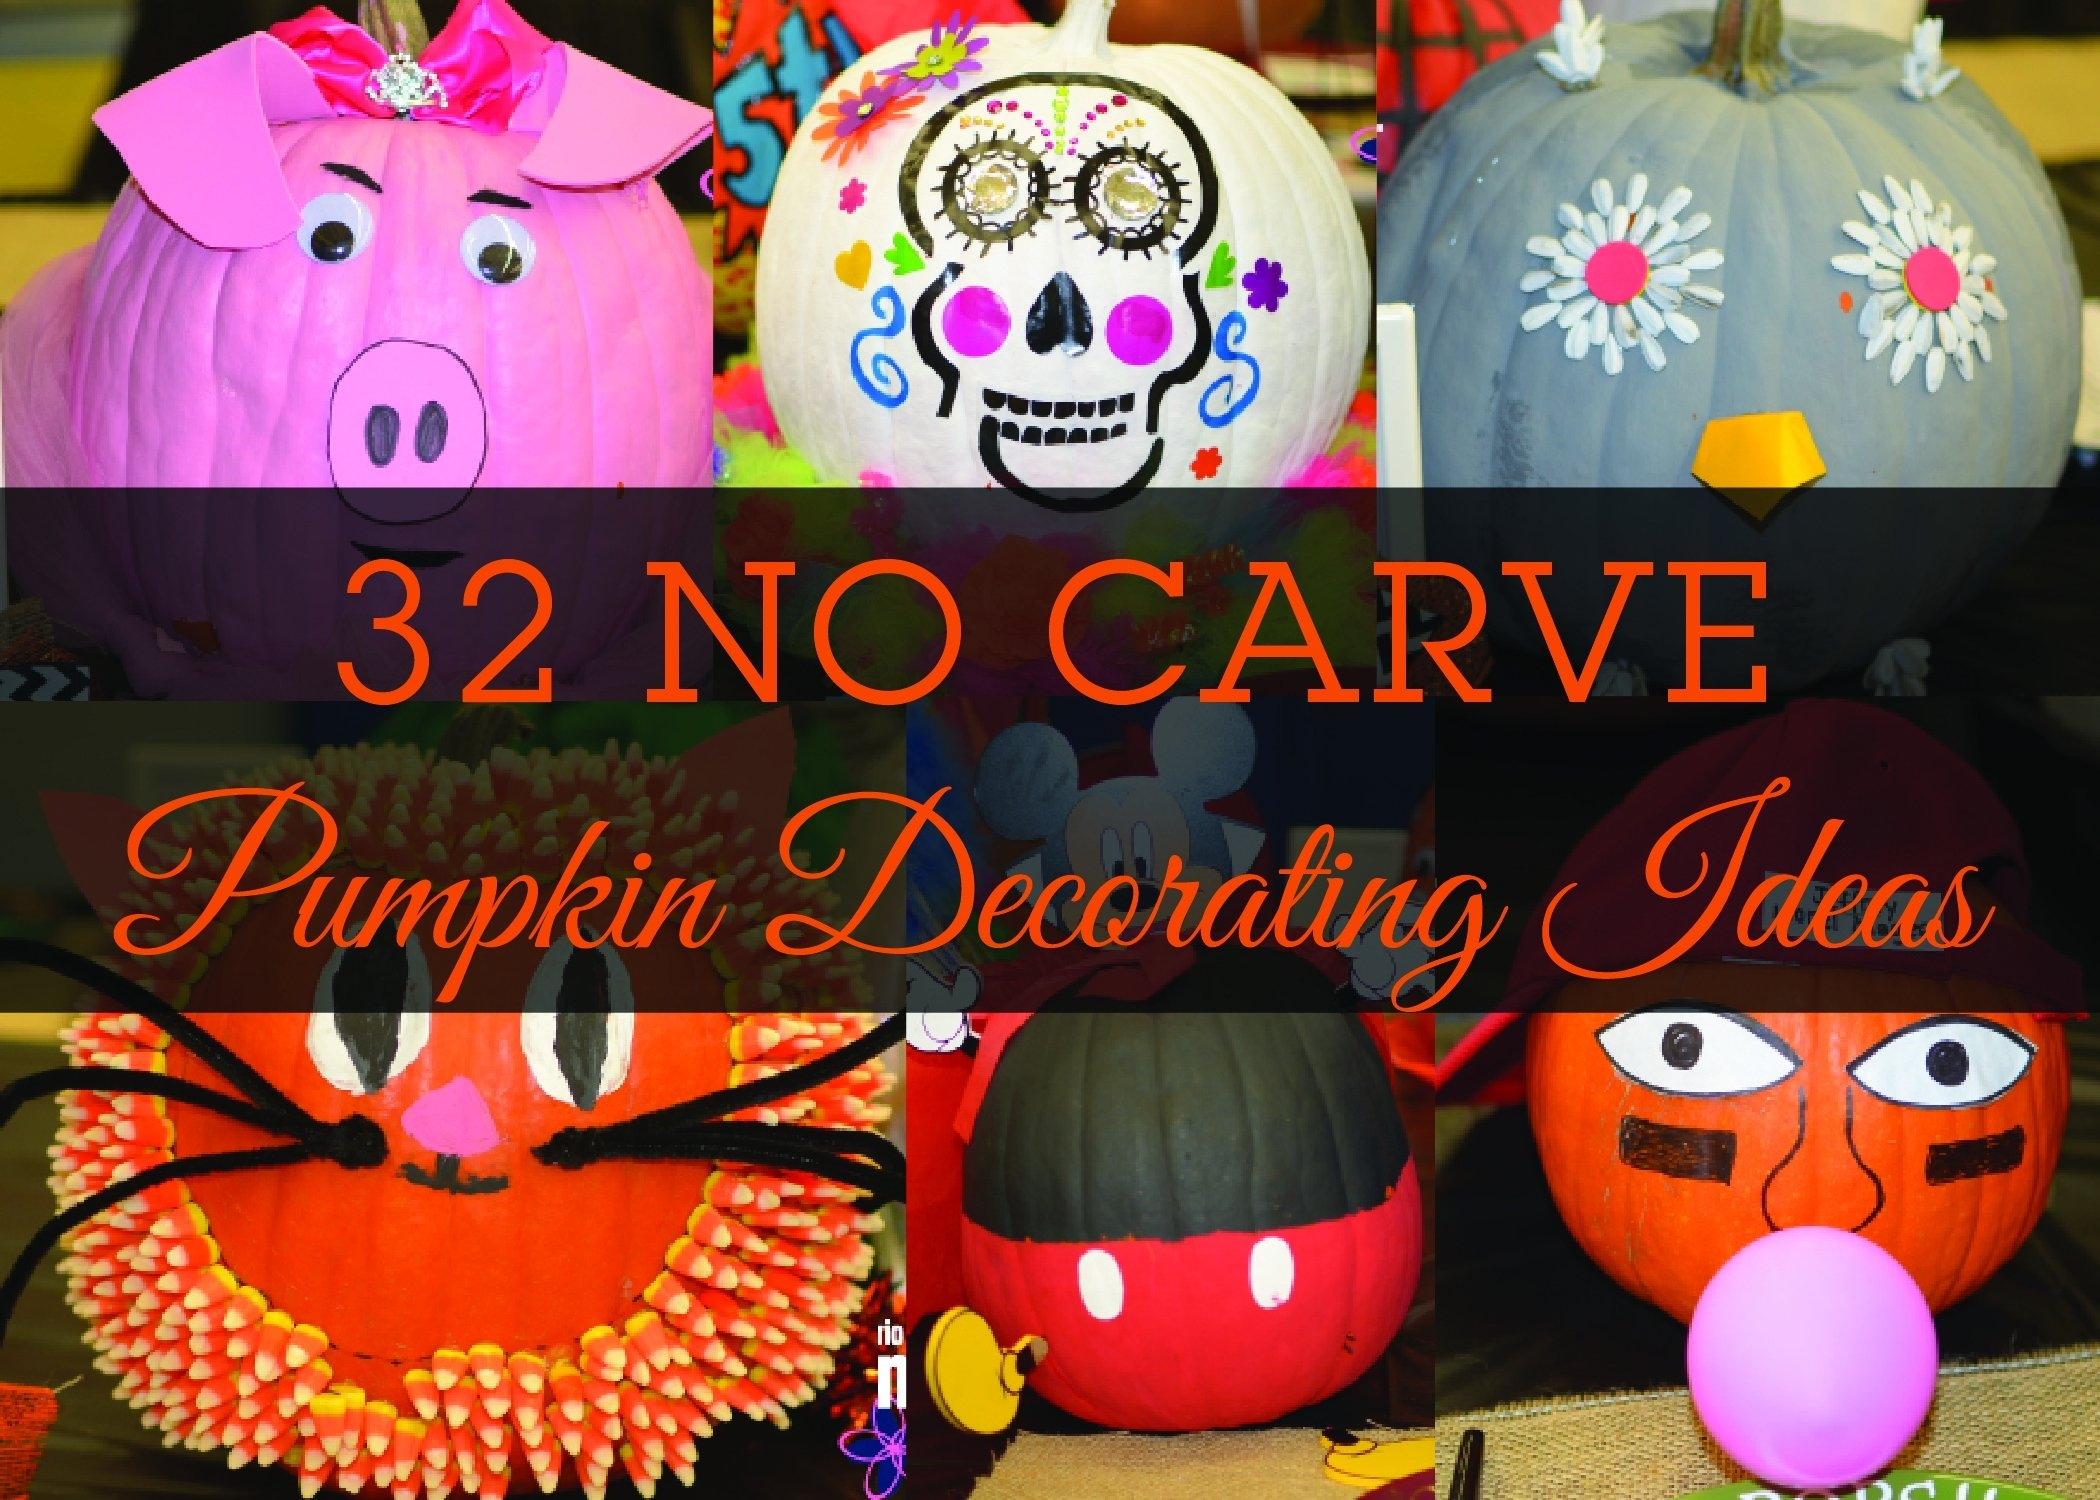 10 Most Recommended Non Carving Pumpkin Decorating Ideas 32 no carve pumpkin decorating ideas 2020